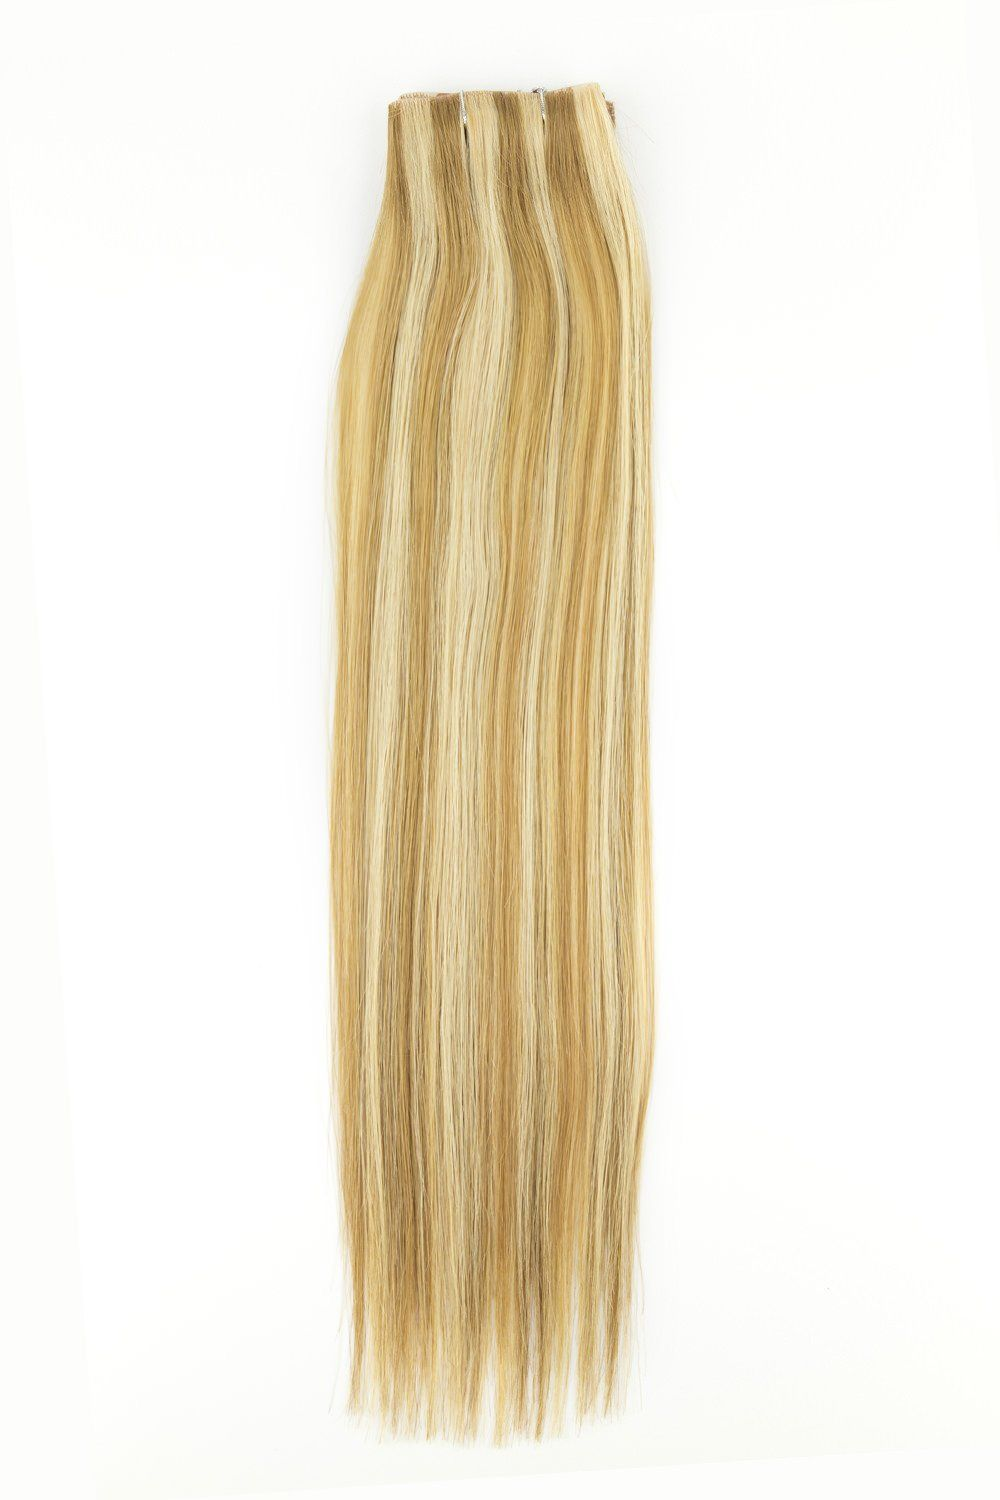 Clip 7 Piece Clip In Black Diamond 100 Remy Human Hair Extensions